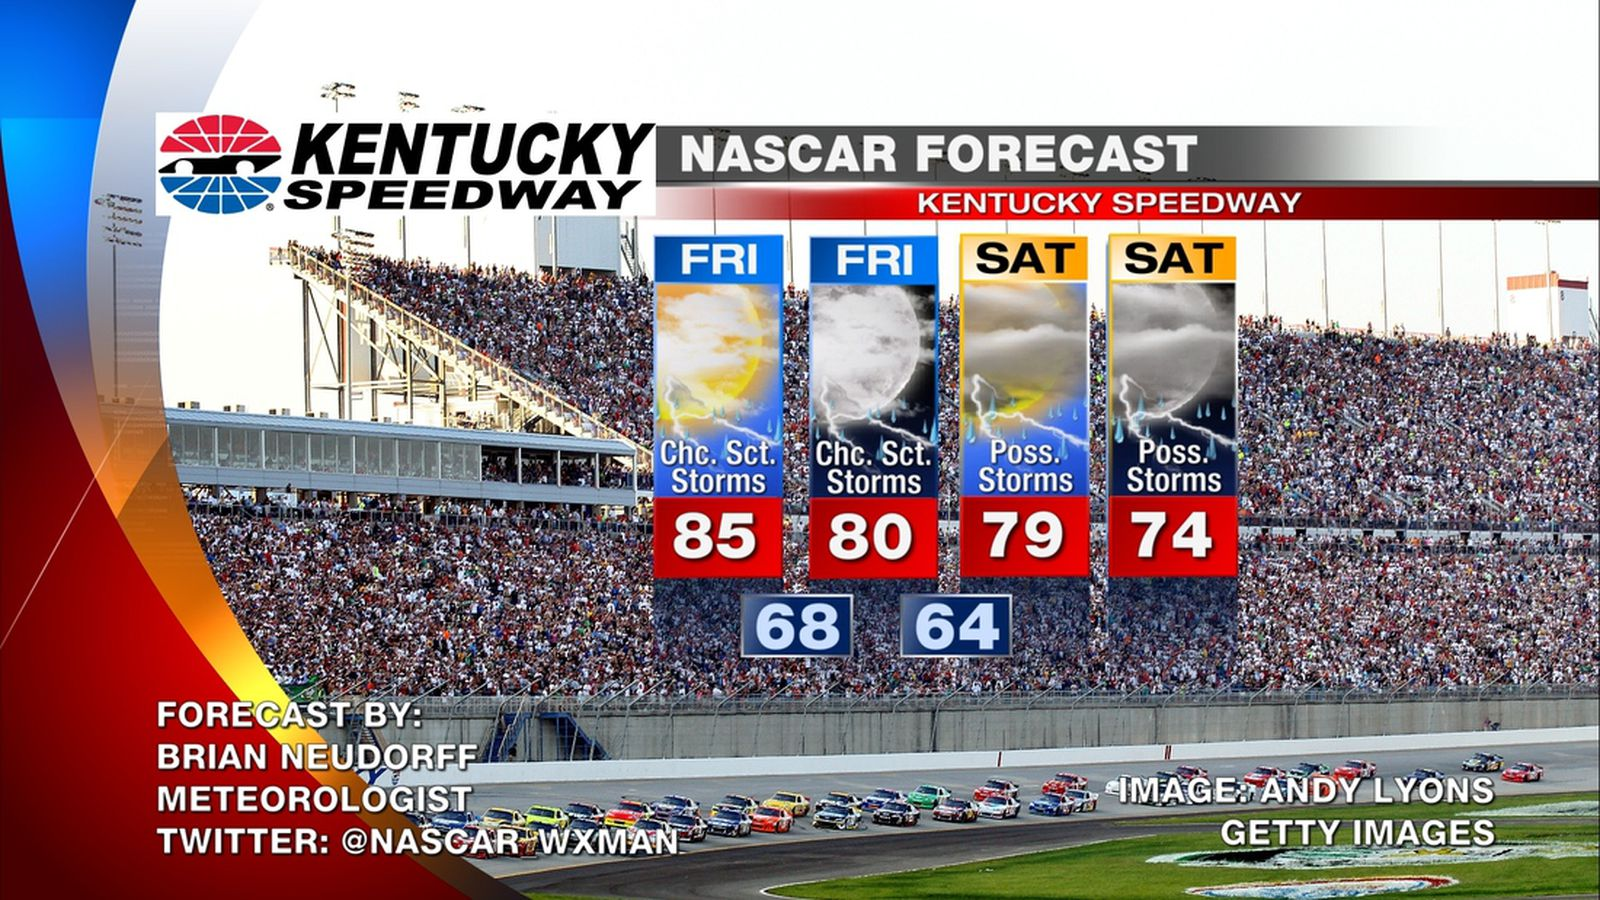 2013 nascar at kentucky speedway weather forecast